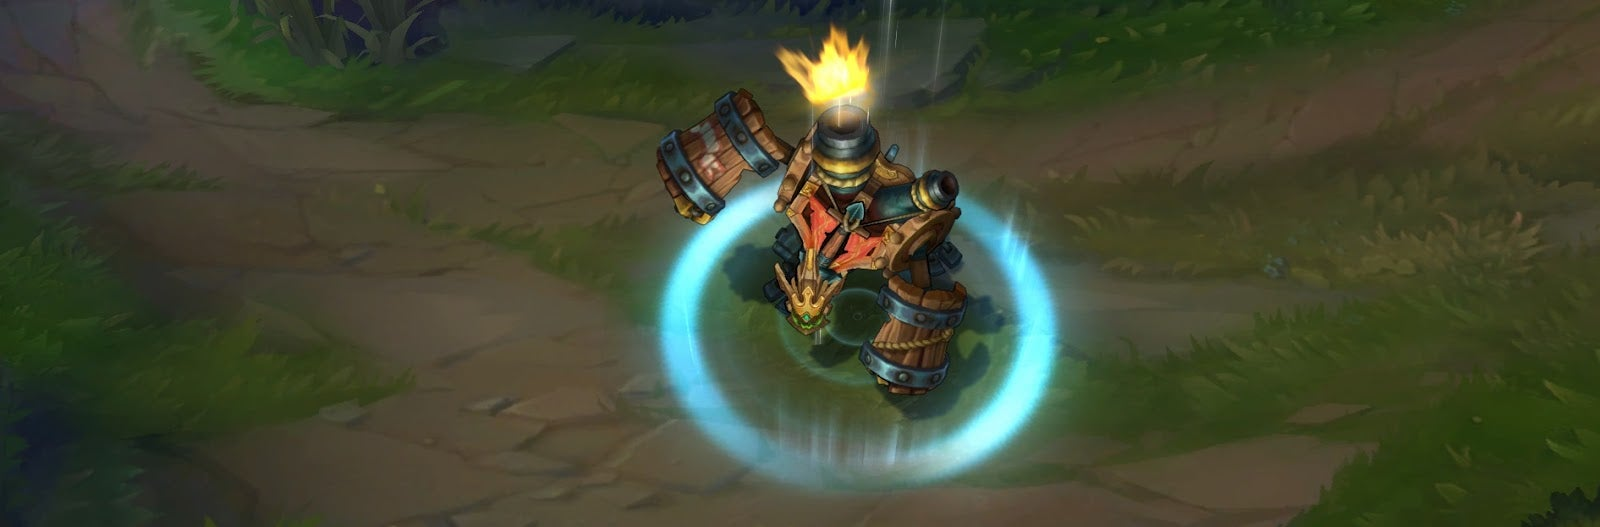 Ironside Malphite Skin Turns League Of Legends' Rock Monster Into A Pirate Ship